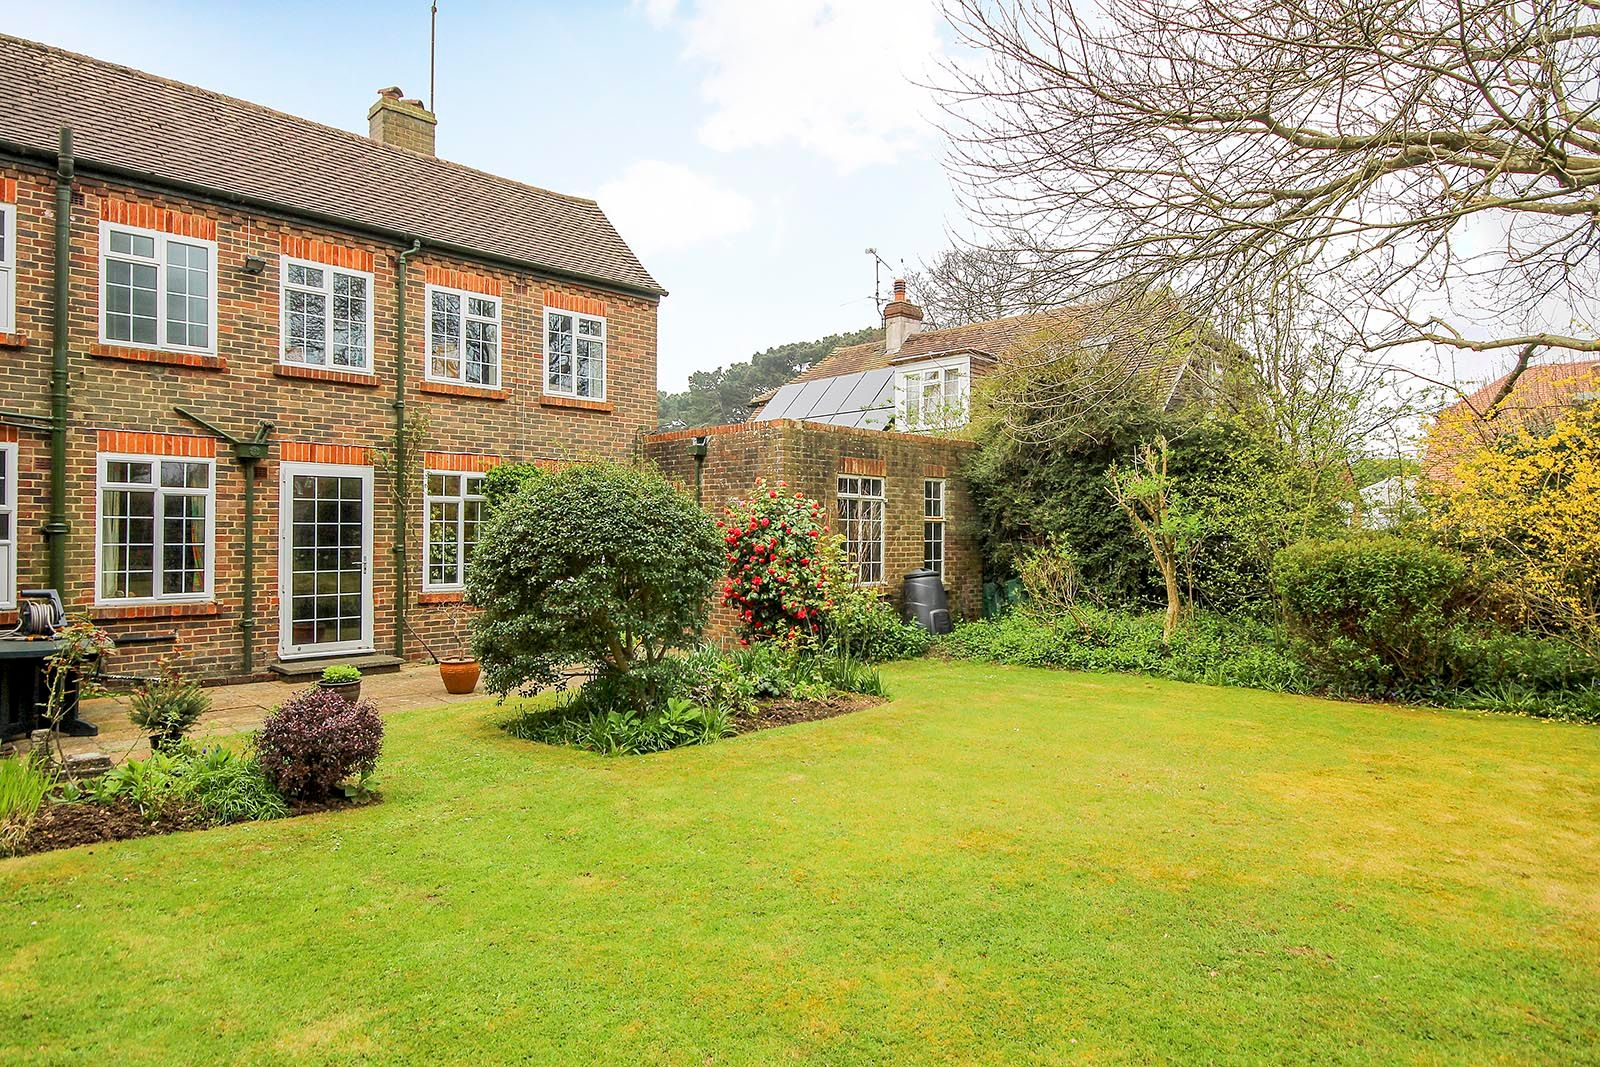 4 bed house for sale in Mill Road (COMP AUG 19) 24